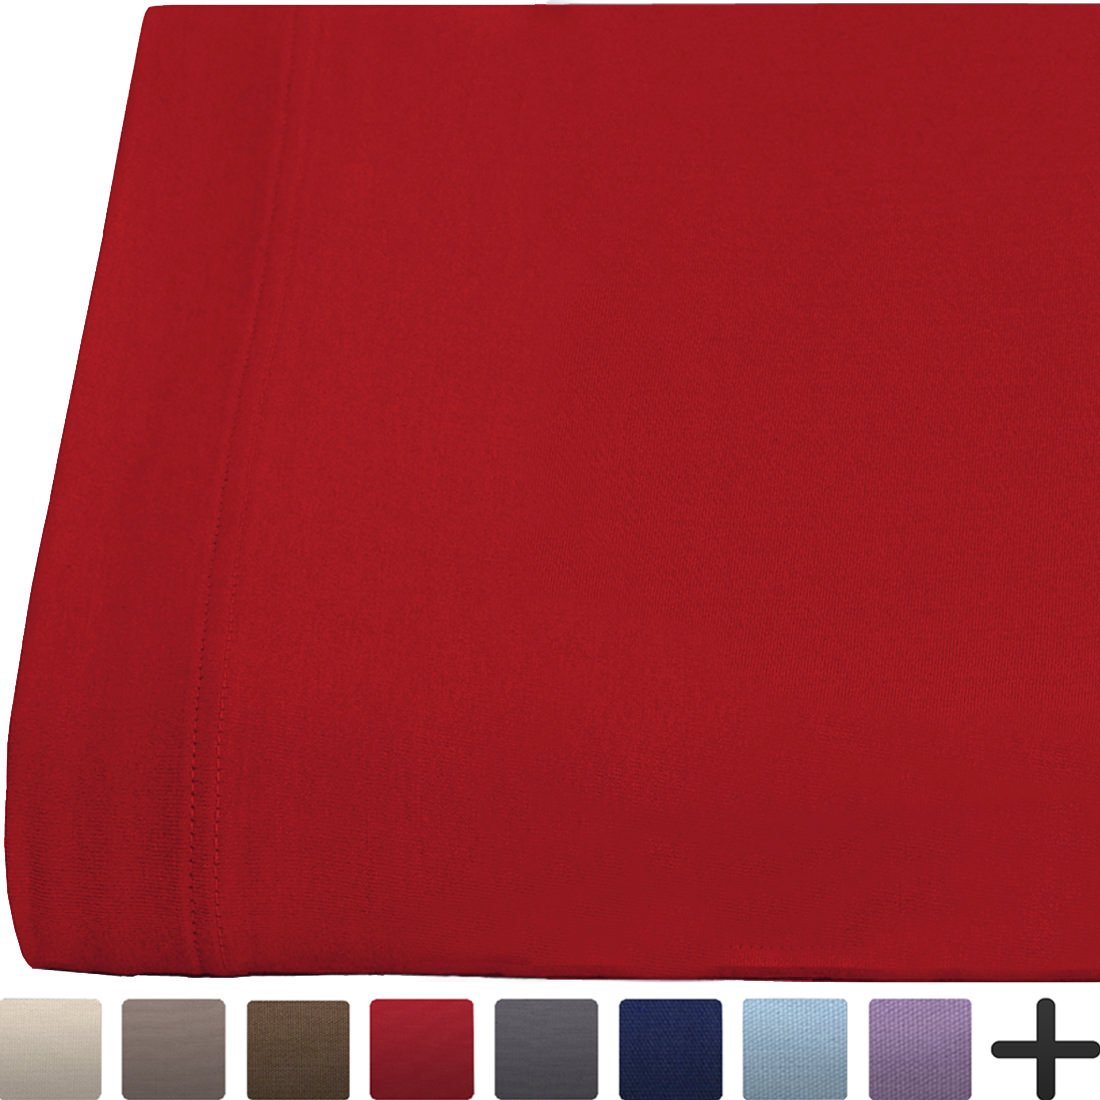 Flat Top Sheet Super Soft Jersey Knit Cotton - All Season Bed Sheets - Cozy - Breathable - Easy Care (Twin XL, Red)